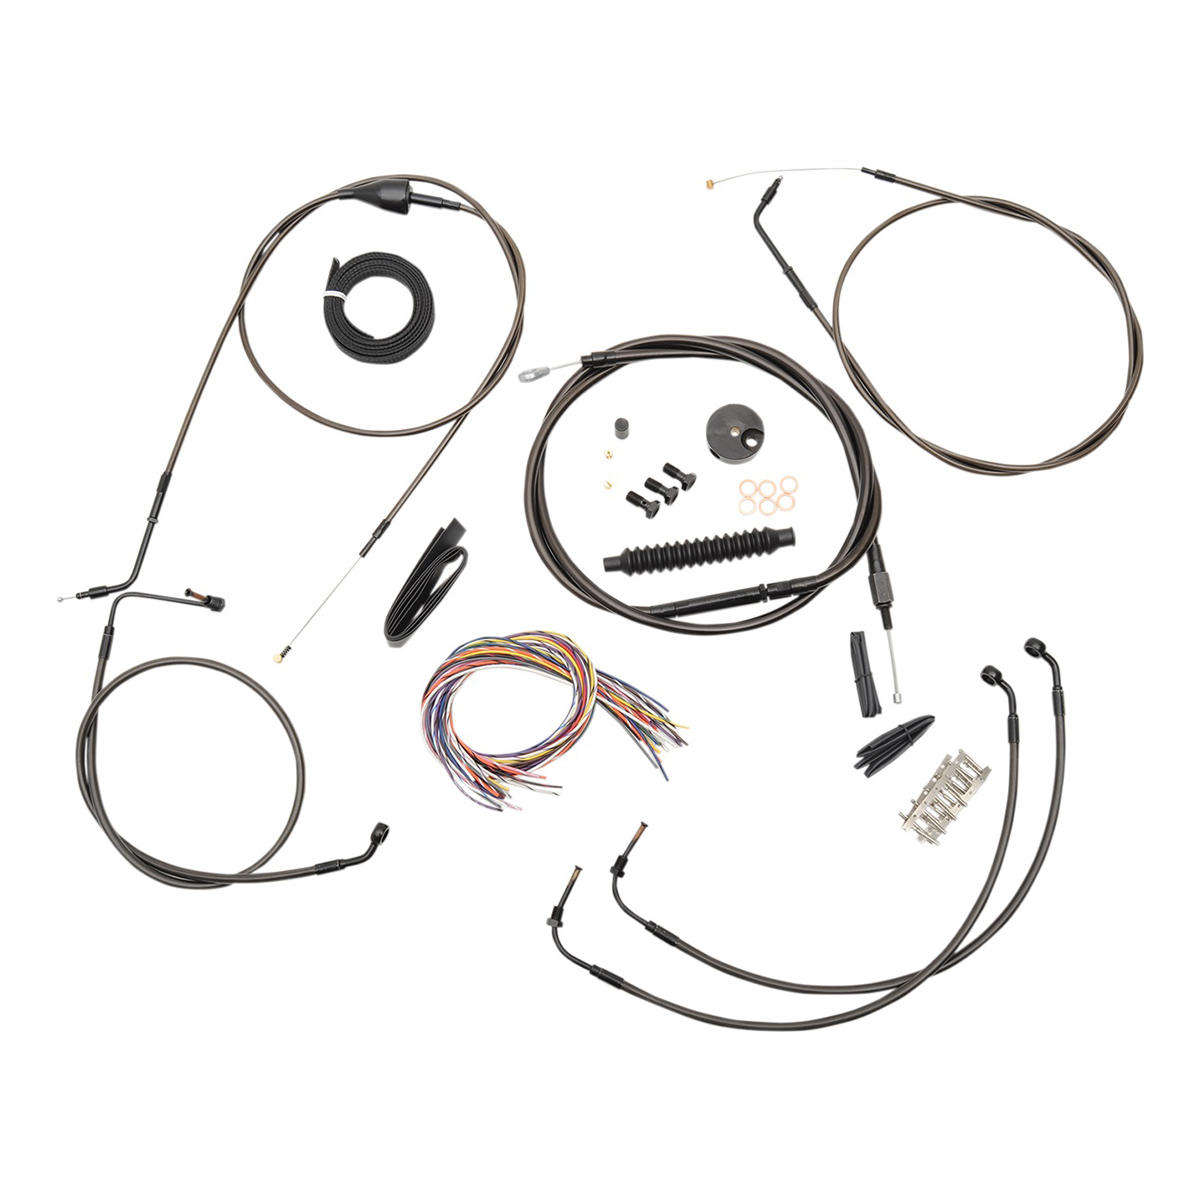 La Choppers Midnight Complete Cable Line Wiring Handlebar Kit For 12 14 Bars